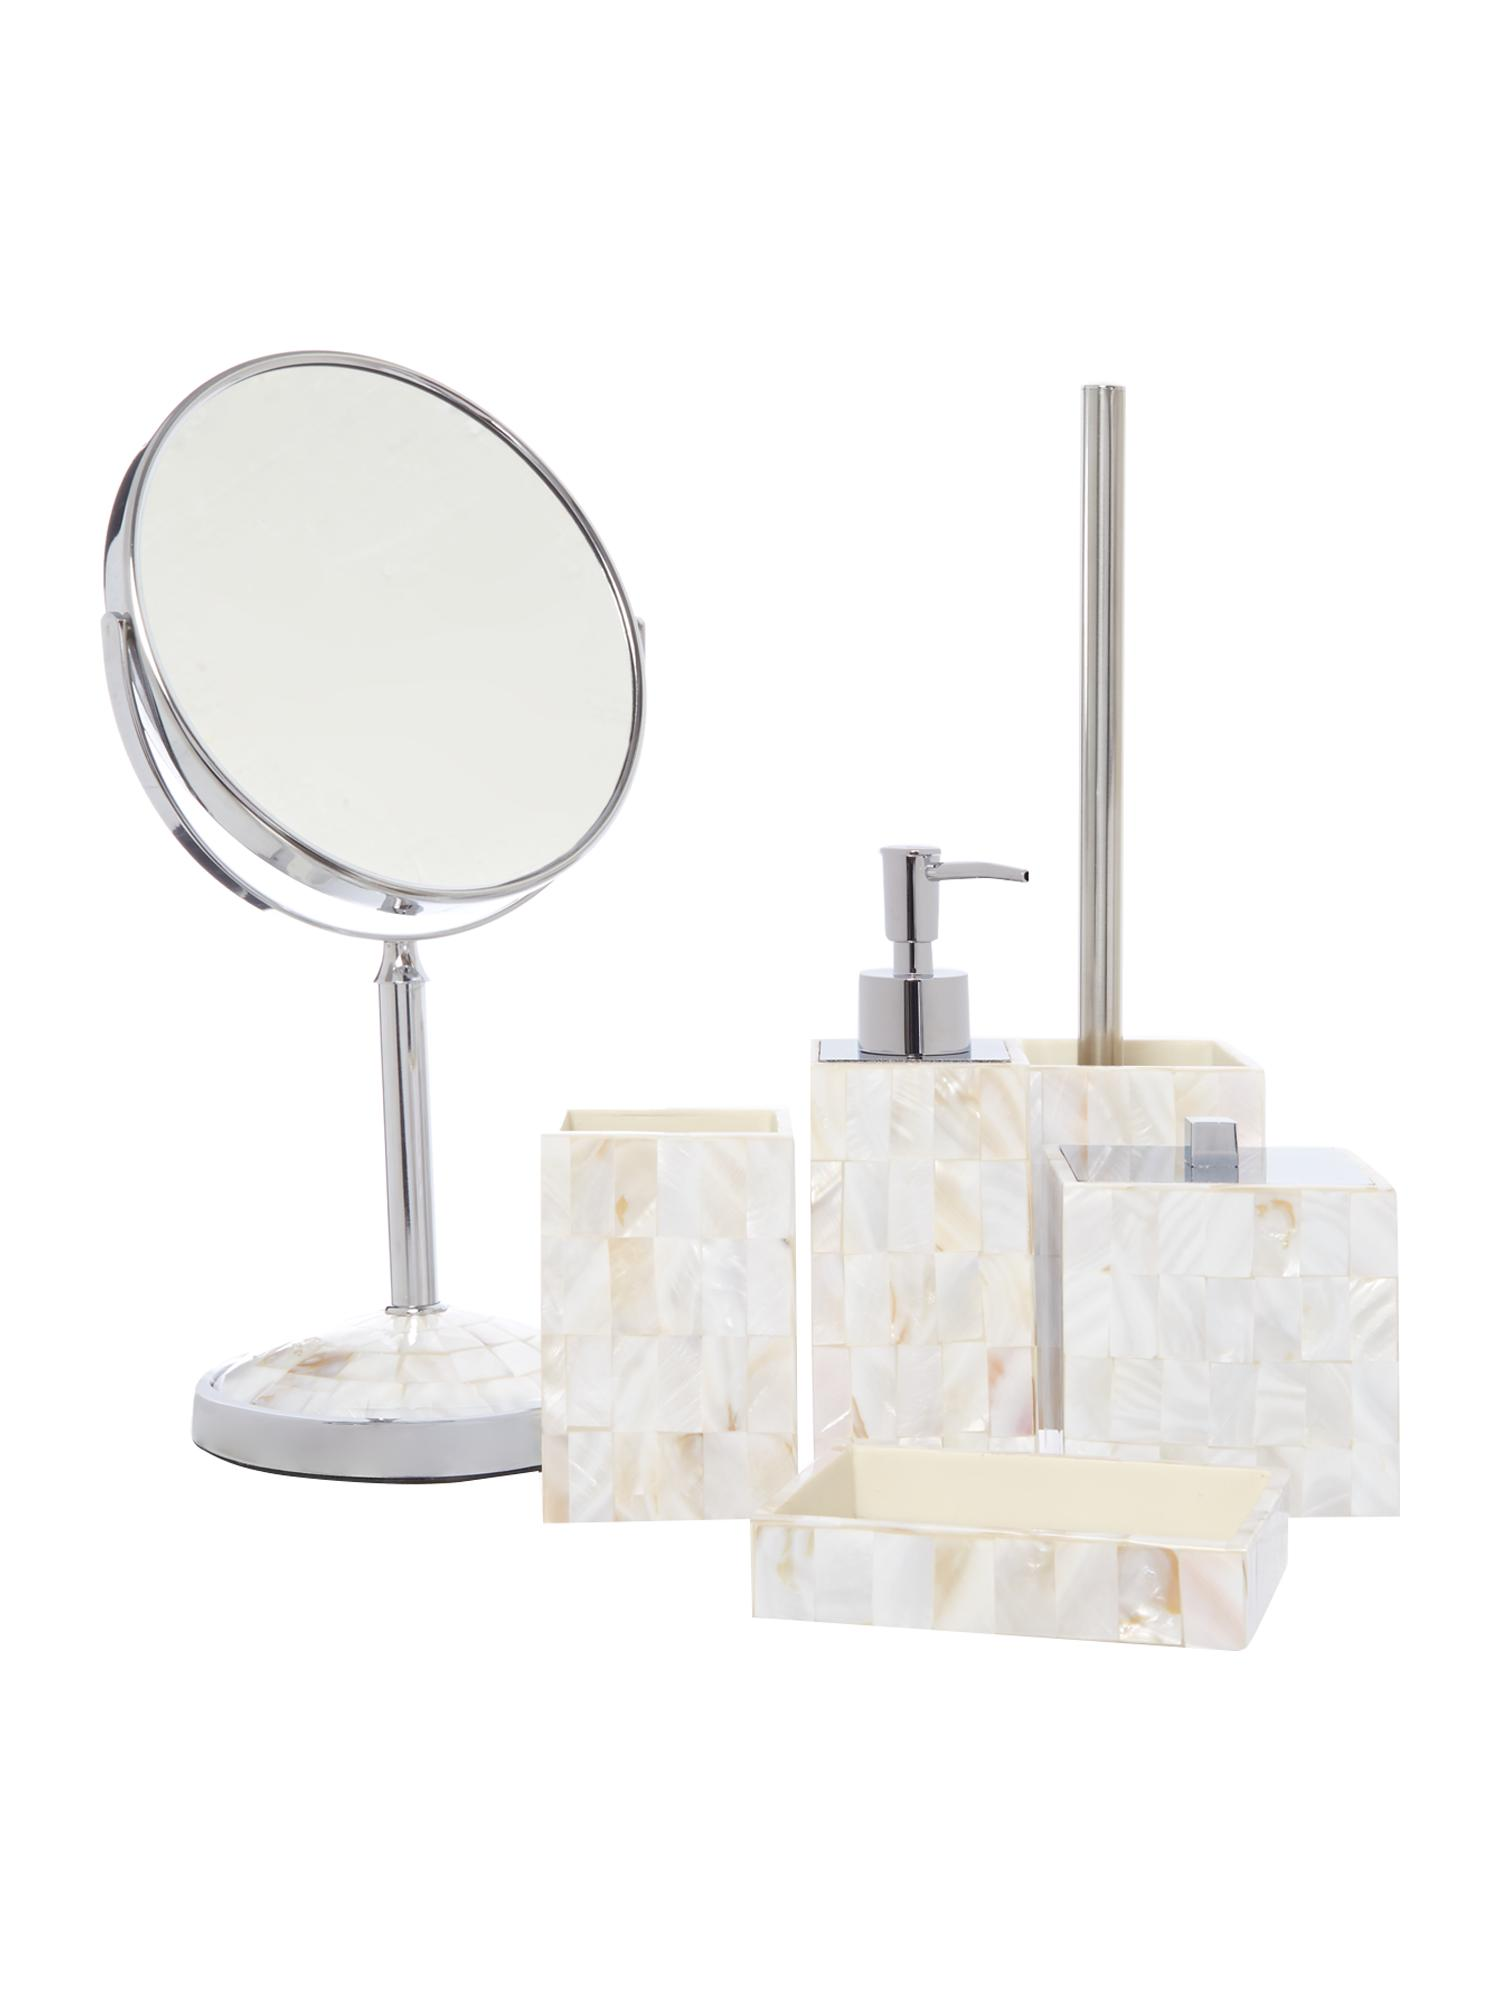 Duck Egg Blue Bathroom Accessories Bathroom Accessories Accessory Sets House Of Fraser